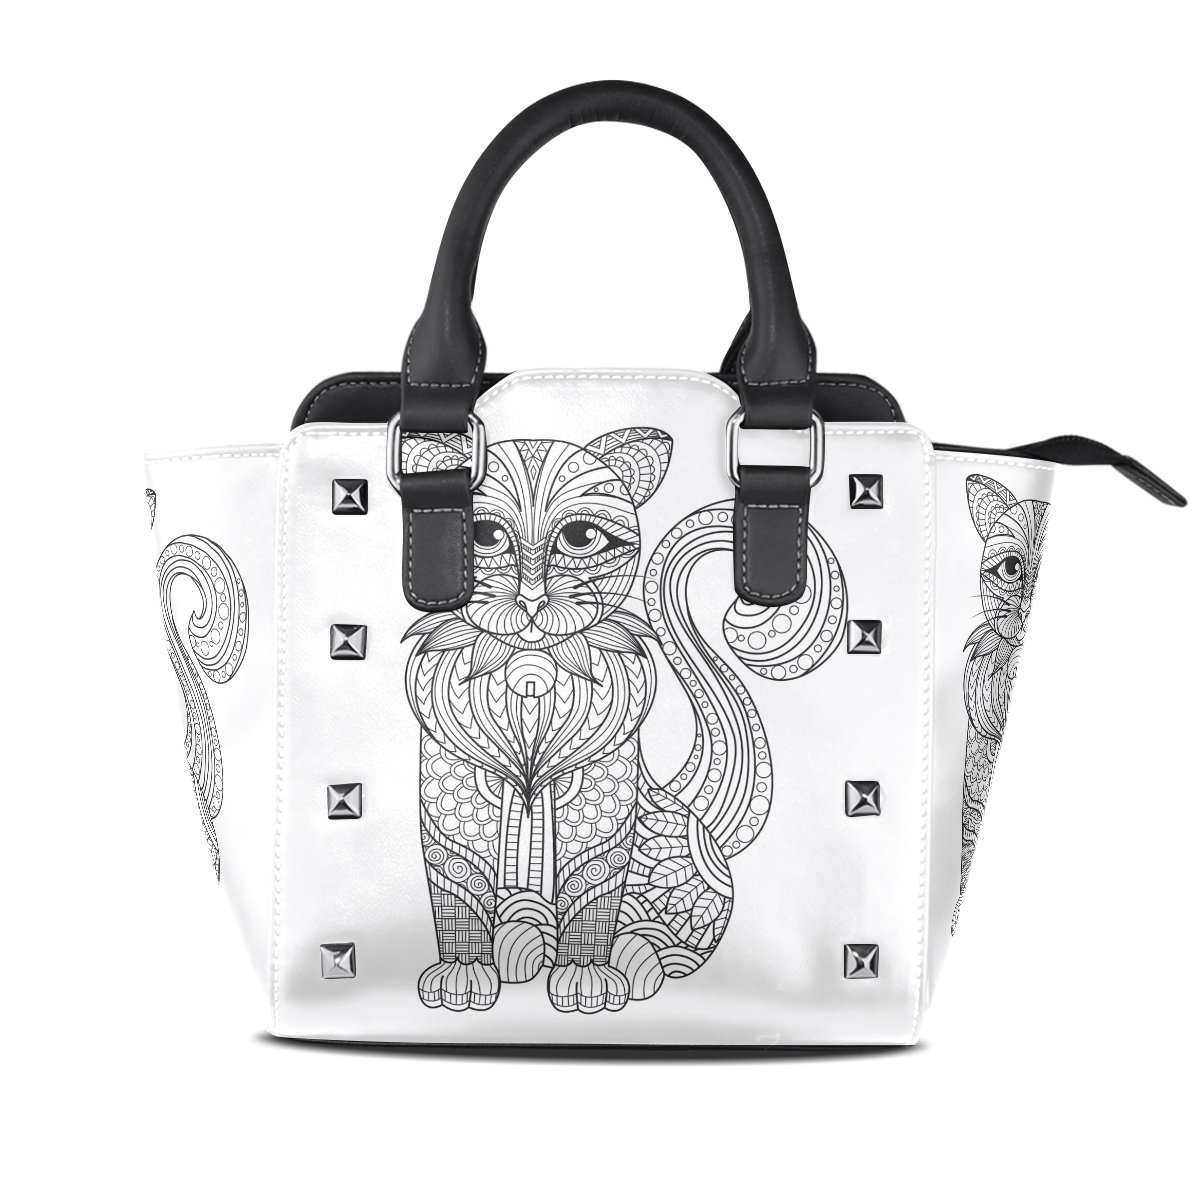 Womens Genuine Leather Hangbags Tote Bags Line Art Cat Purse Shoulder Bags